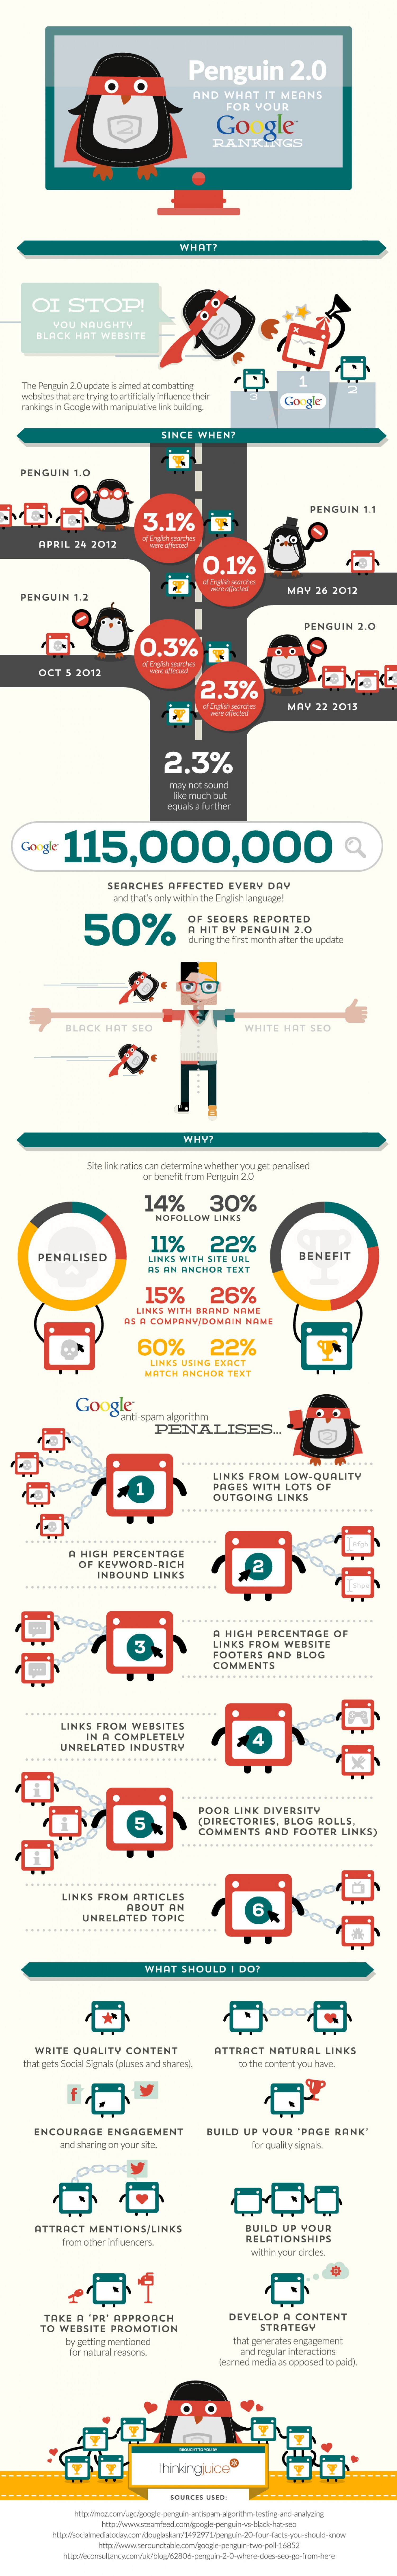 google-penguin-20-alghorithm-update-may-2013--infographic-seo